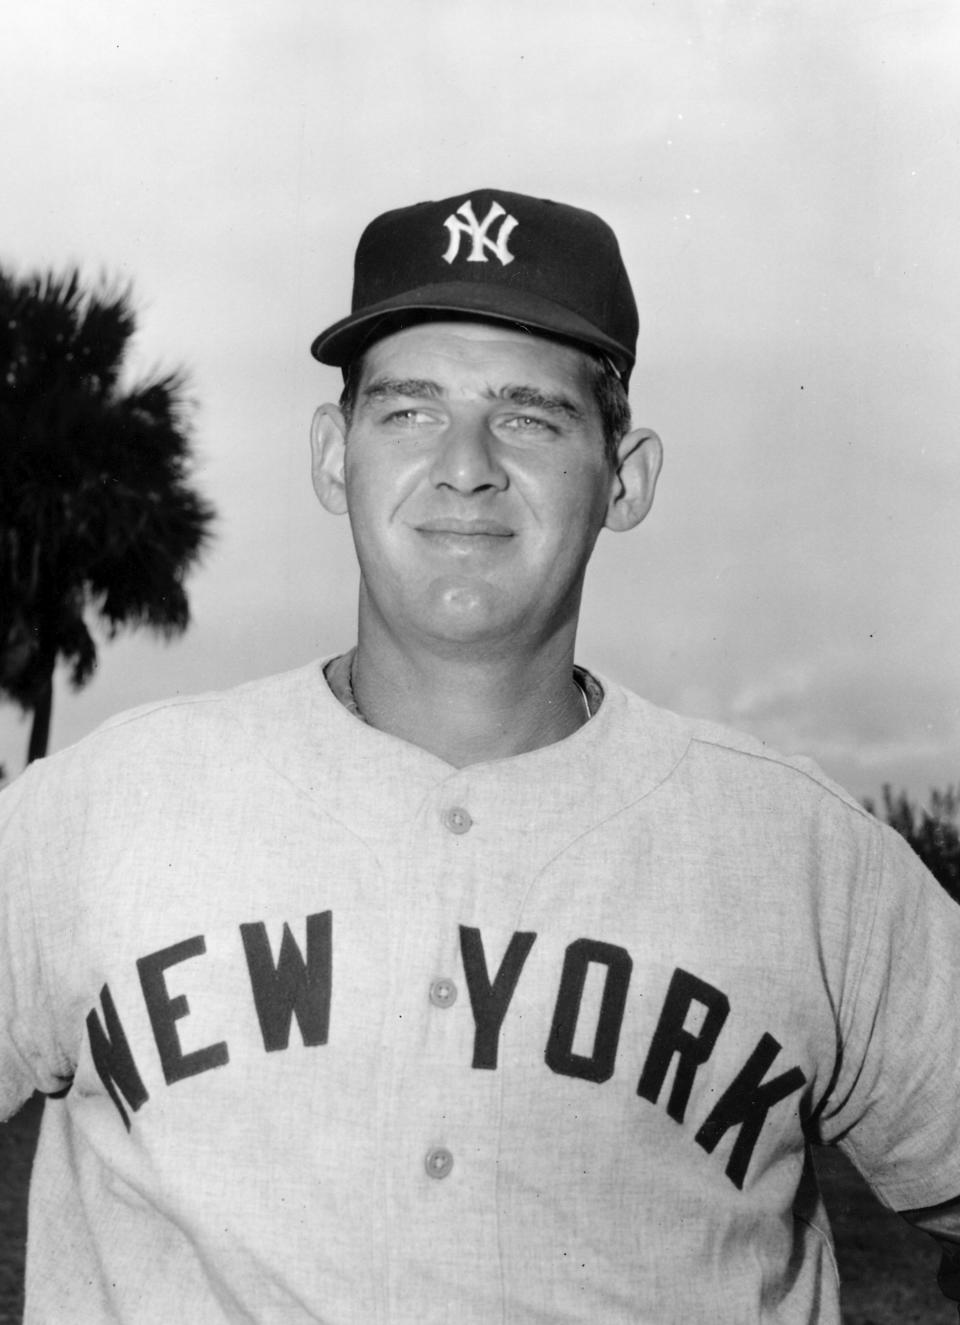 FILE - In this March 1956 file photo, New York Yankees pitcher Don Larsen poses for a photo during baseball spring training in St. Petersburg, Fla. Larsen, the journeyman pitcher who reached the heights of baseball glory in 1956 for the Yankees when he threw a perfect game and the only no-hitter in World Series history, died Wednesday night, Jan. 1, 2020. He was 90. (AP Photo, File)